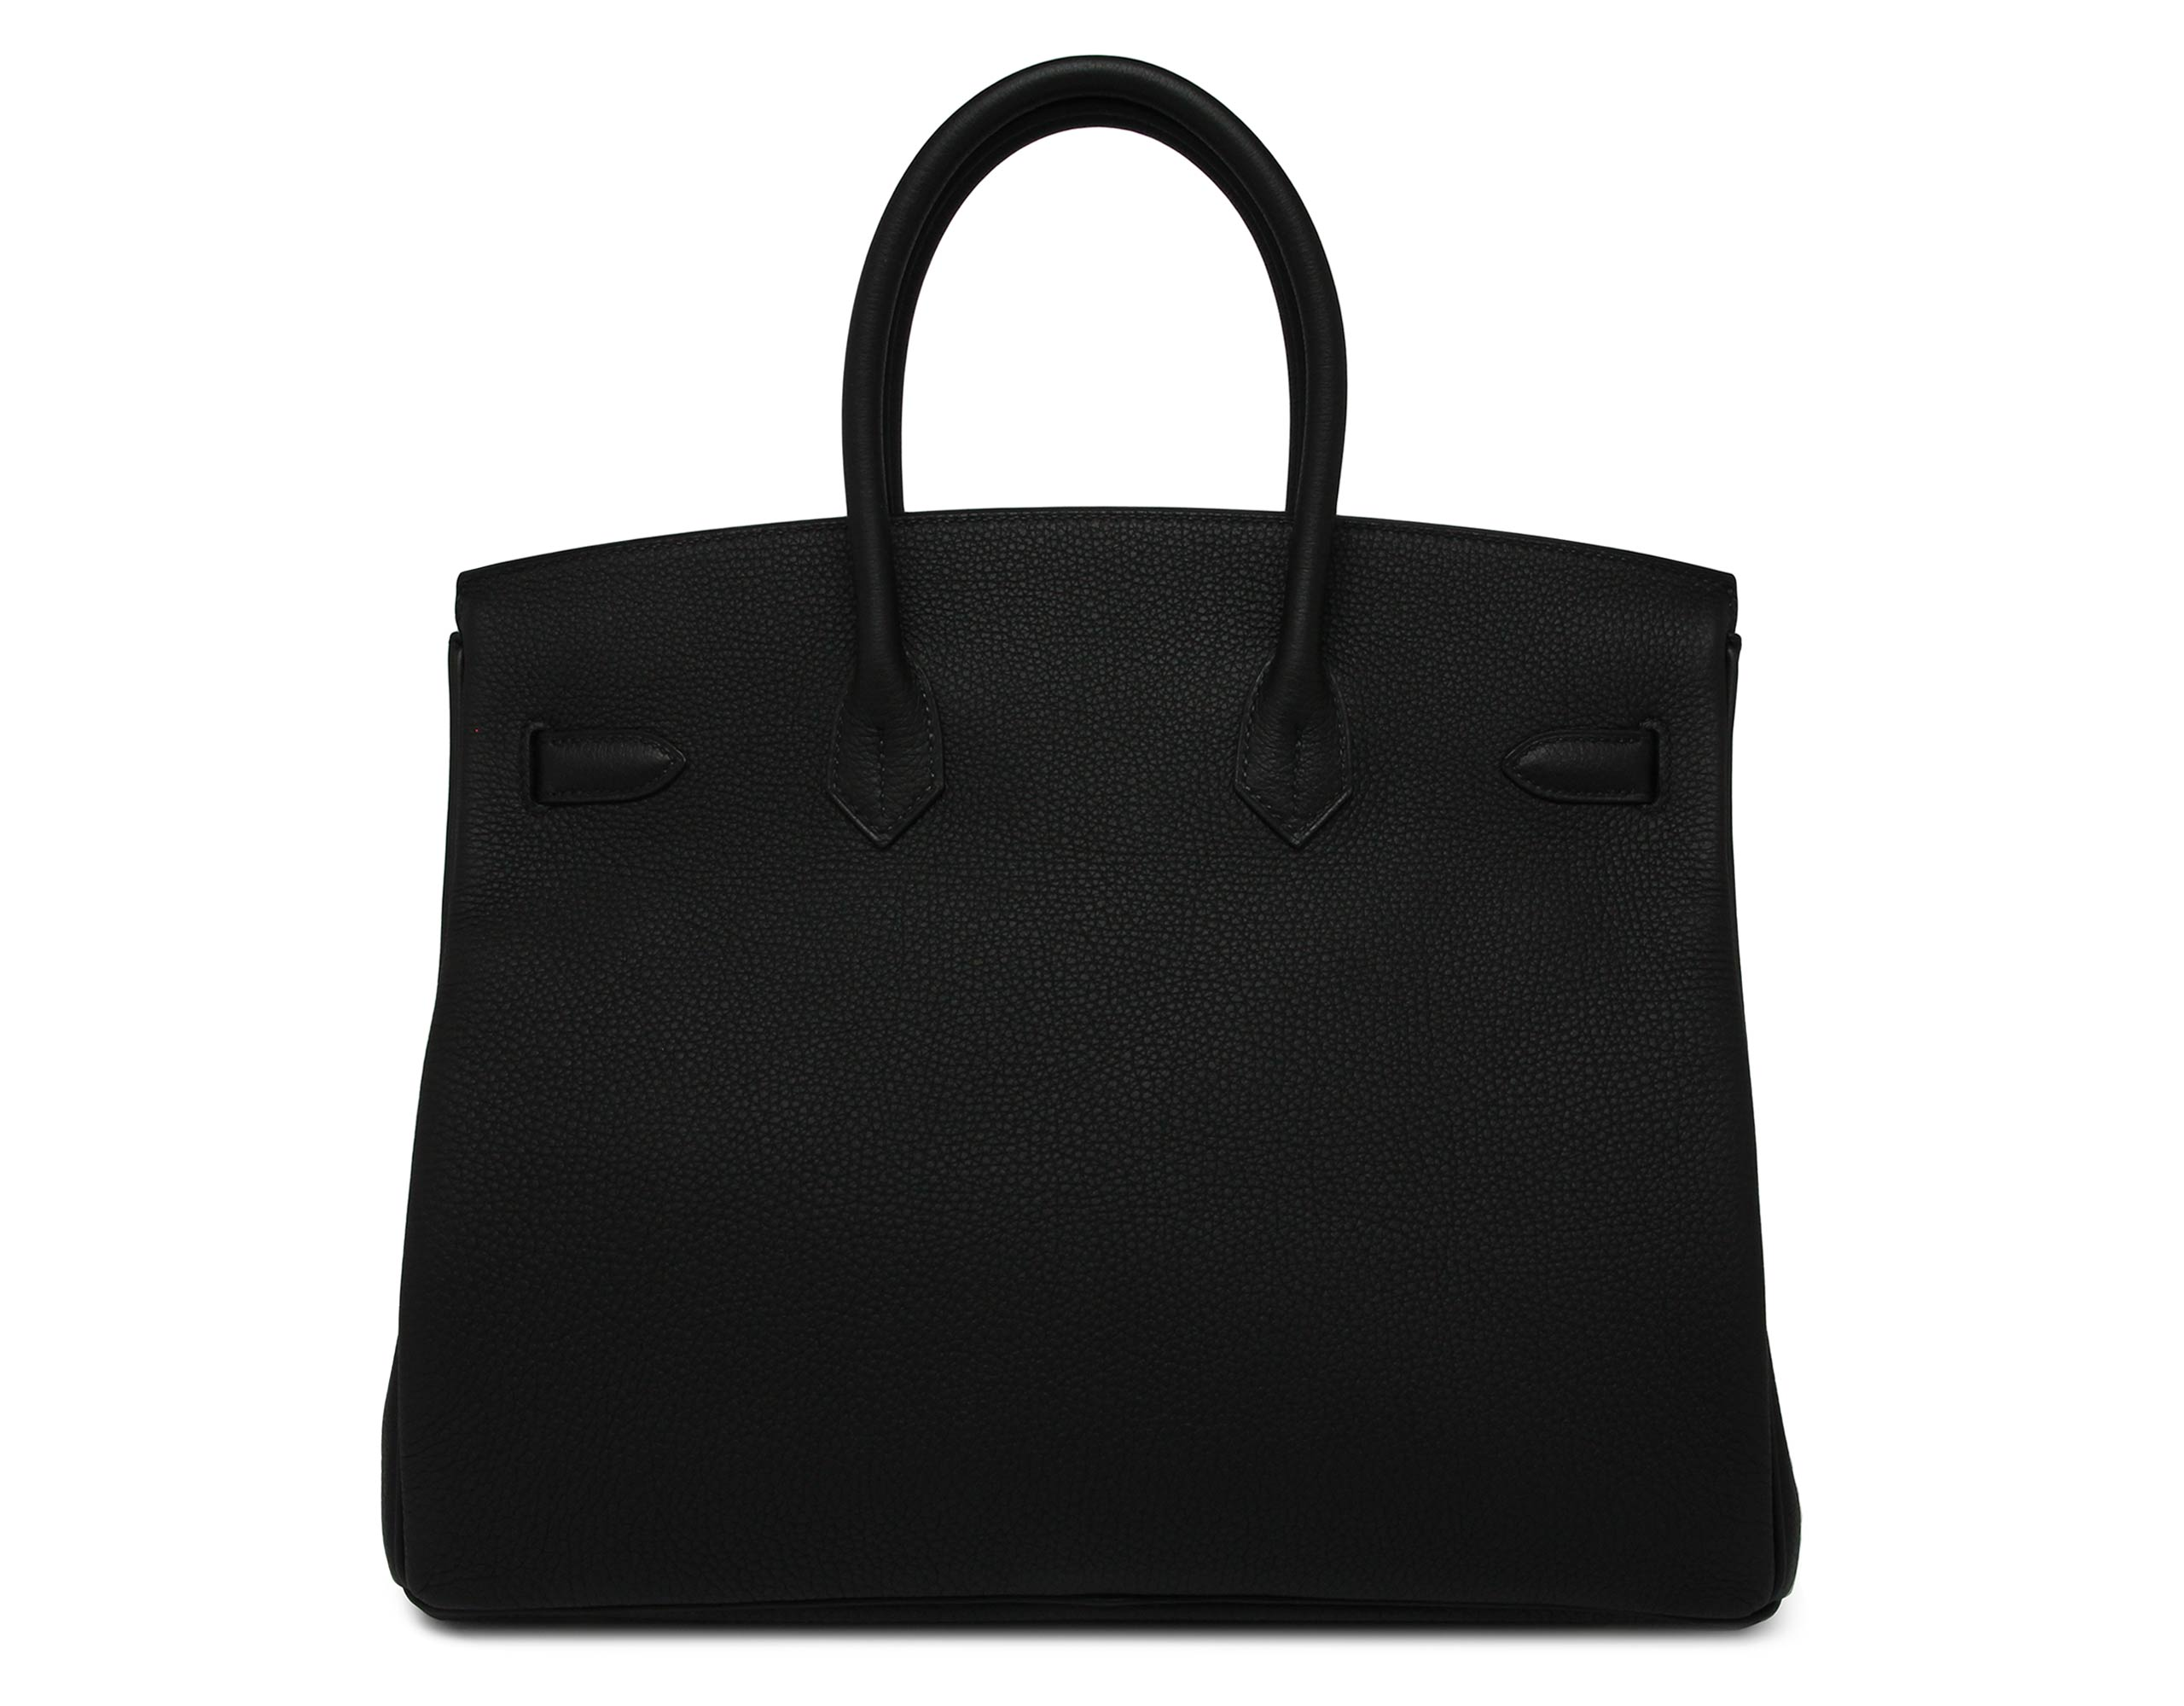 hermes 35cm black togo birkin bag with gold hardware